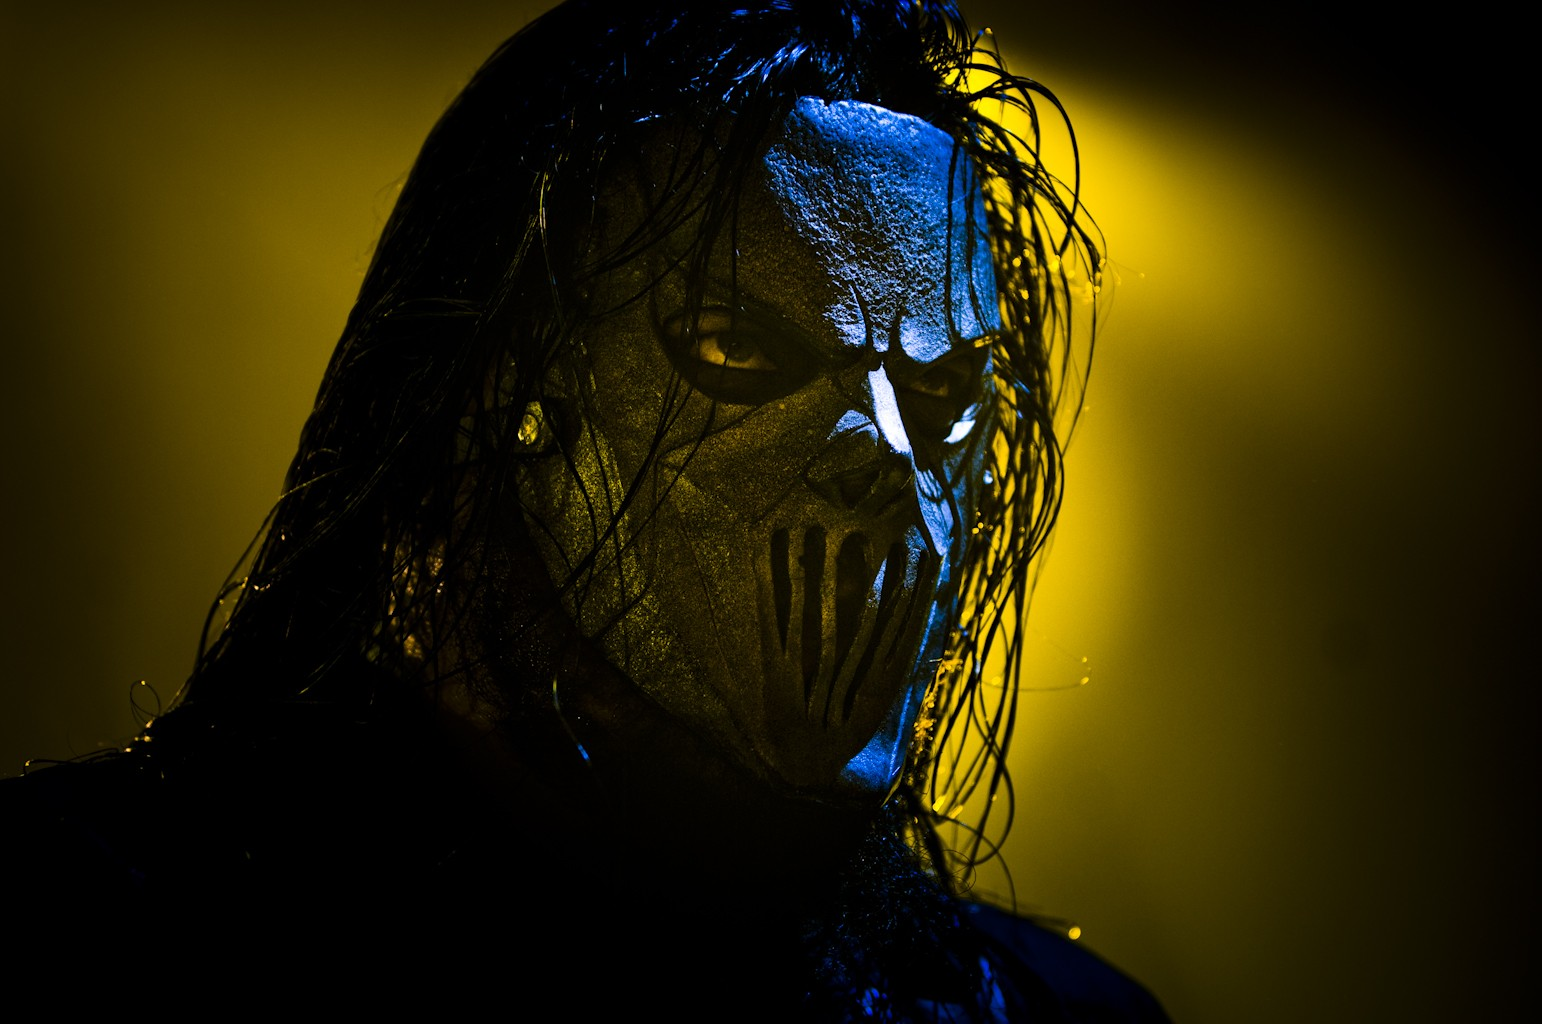 Slipknot Wallpapers HD A7